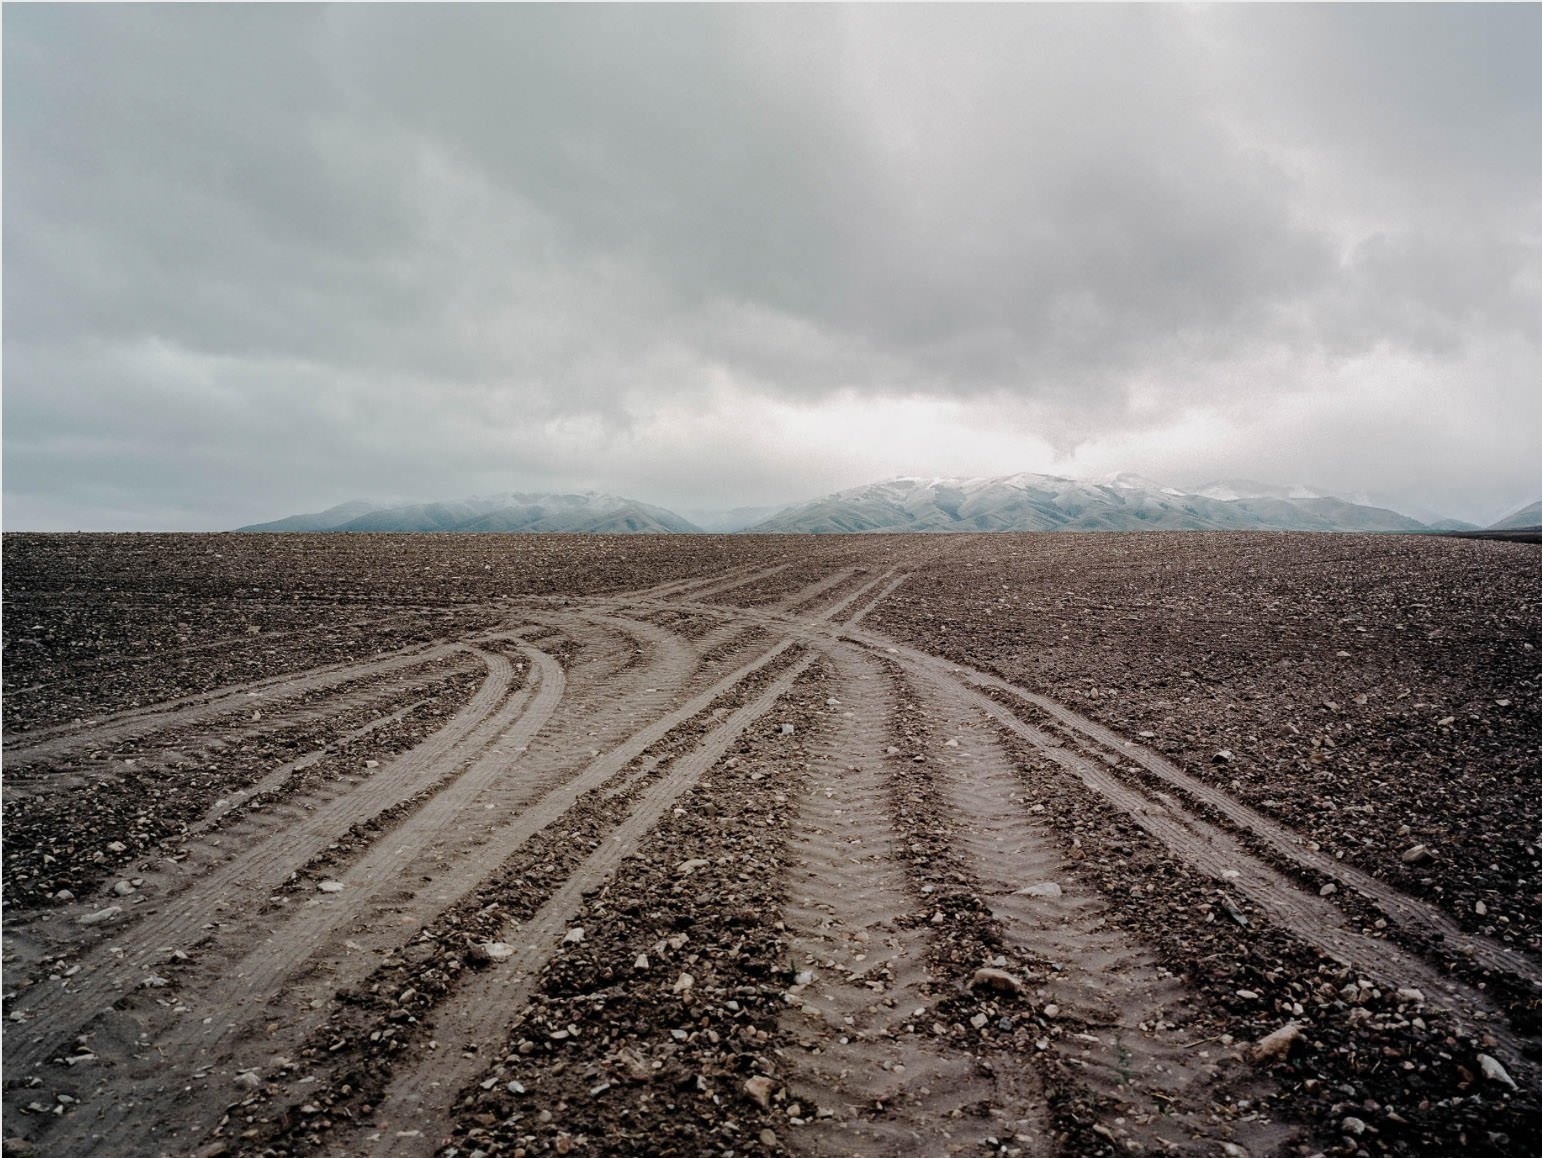 Landscape desert photography by Cody Cobb